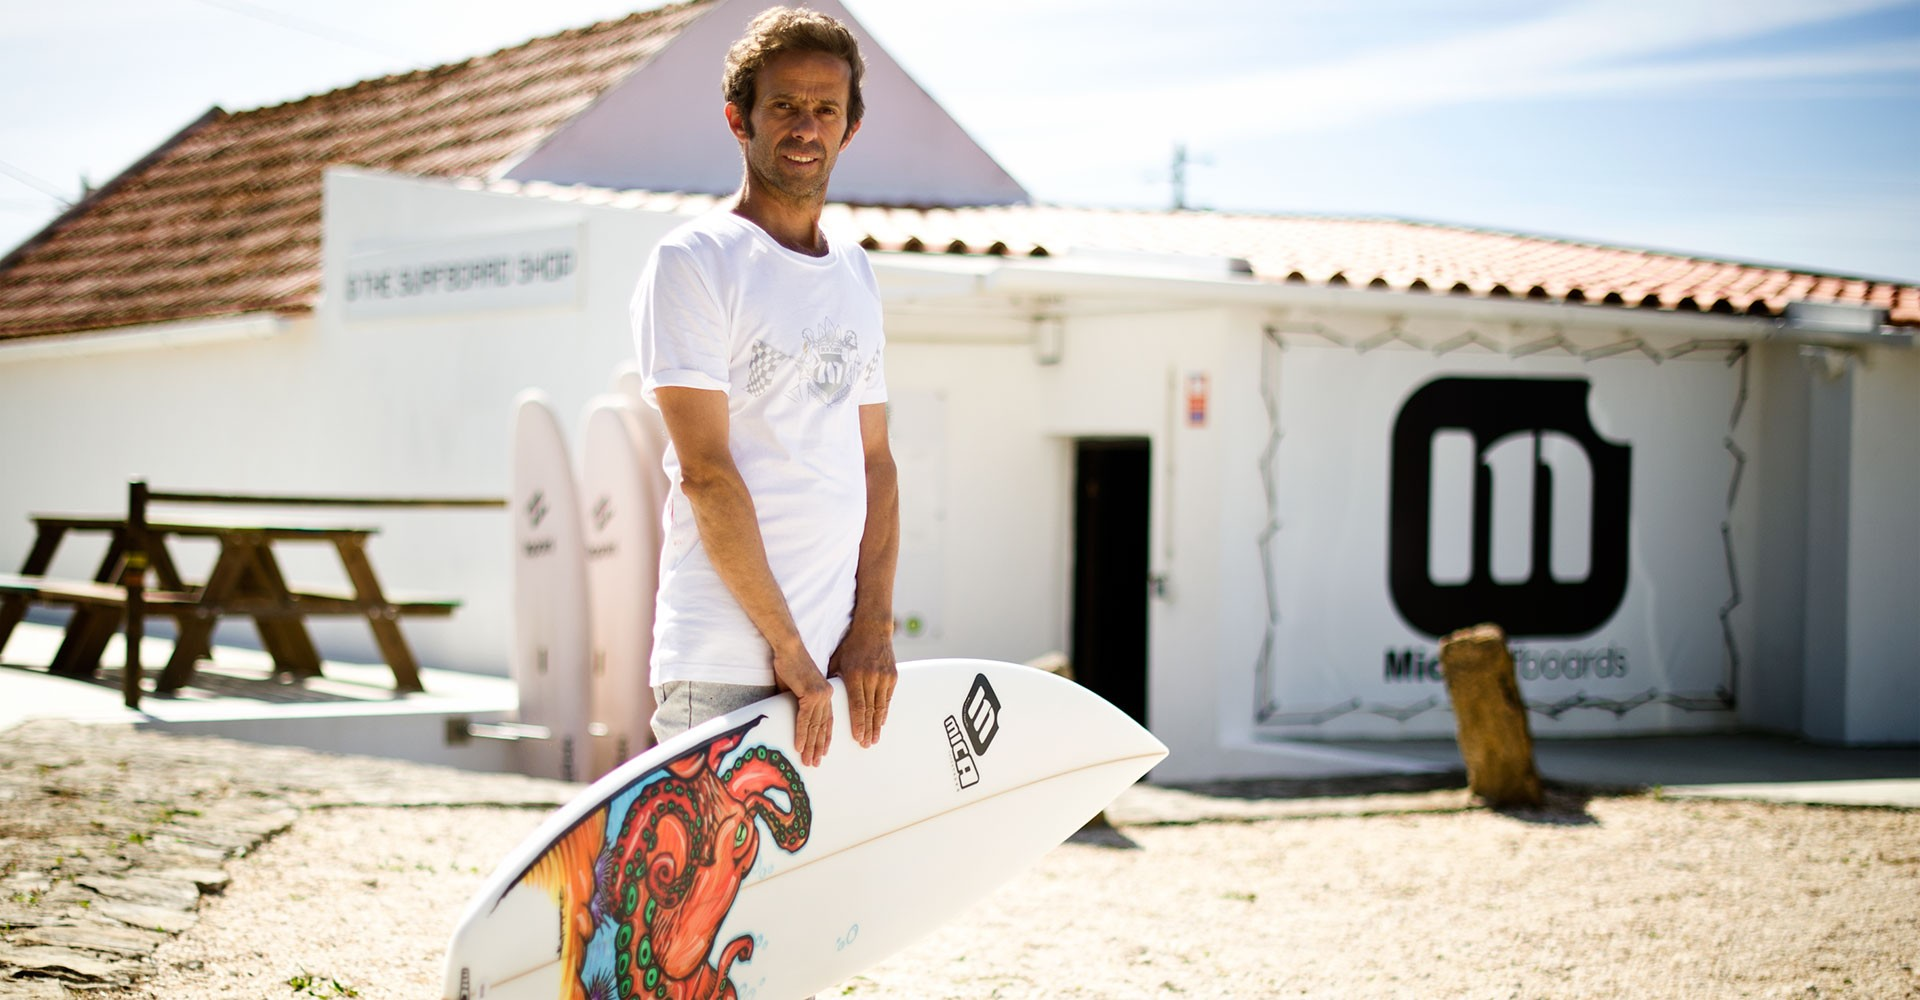 Local Mica Lourenço is Micasurfboards shaper at The Surfboard Shop in Ericeira, Portugal.